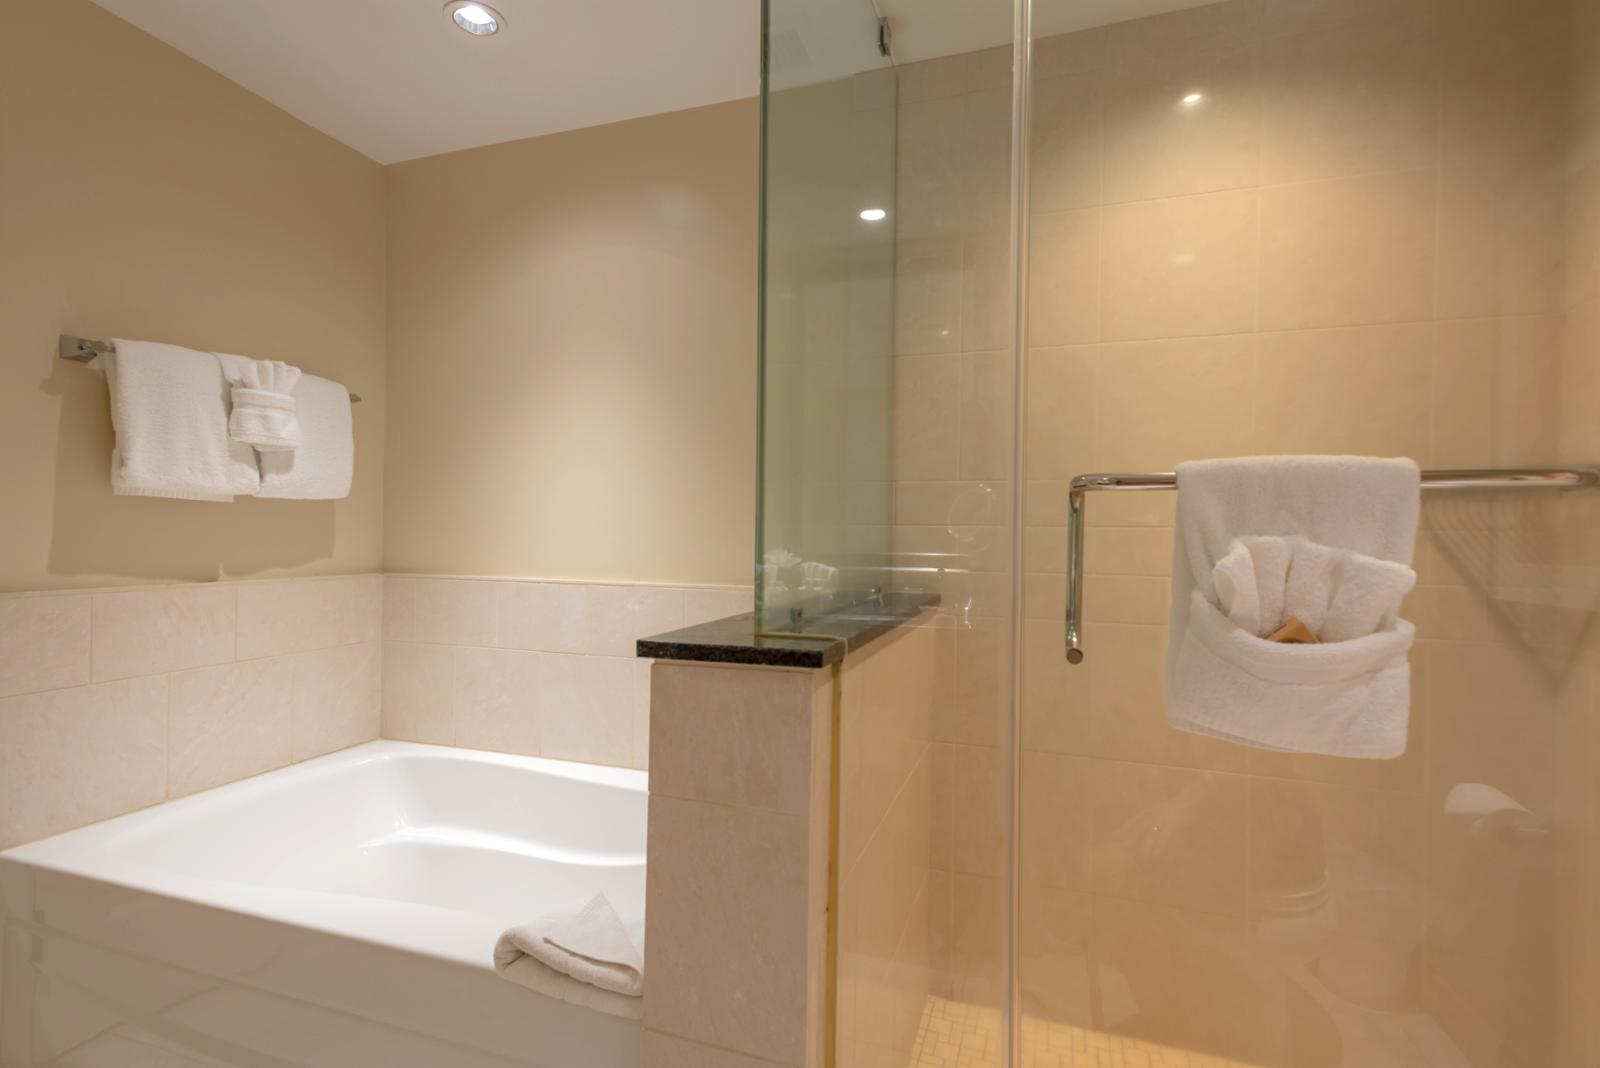 Entry angle of floor to ceiling glass shower